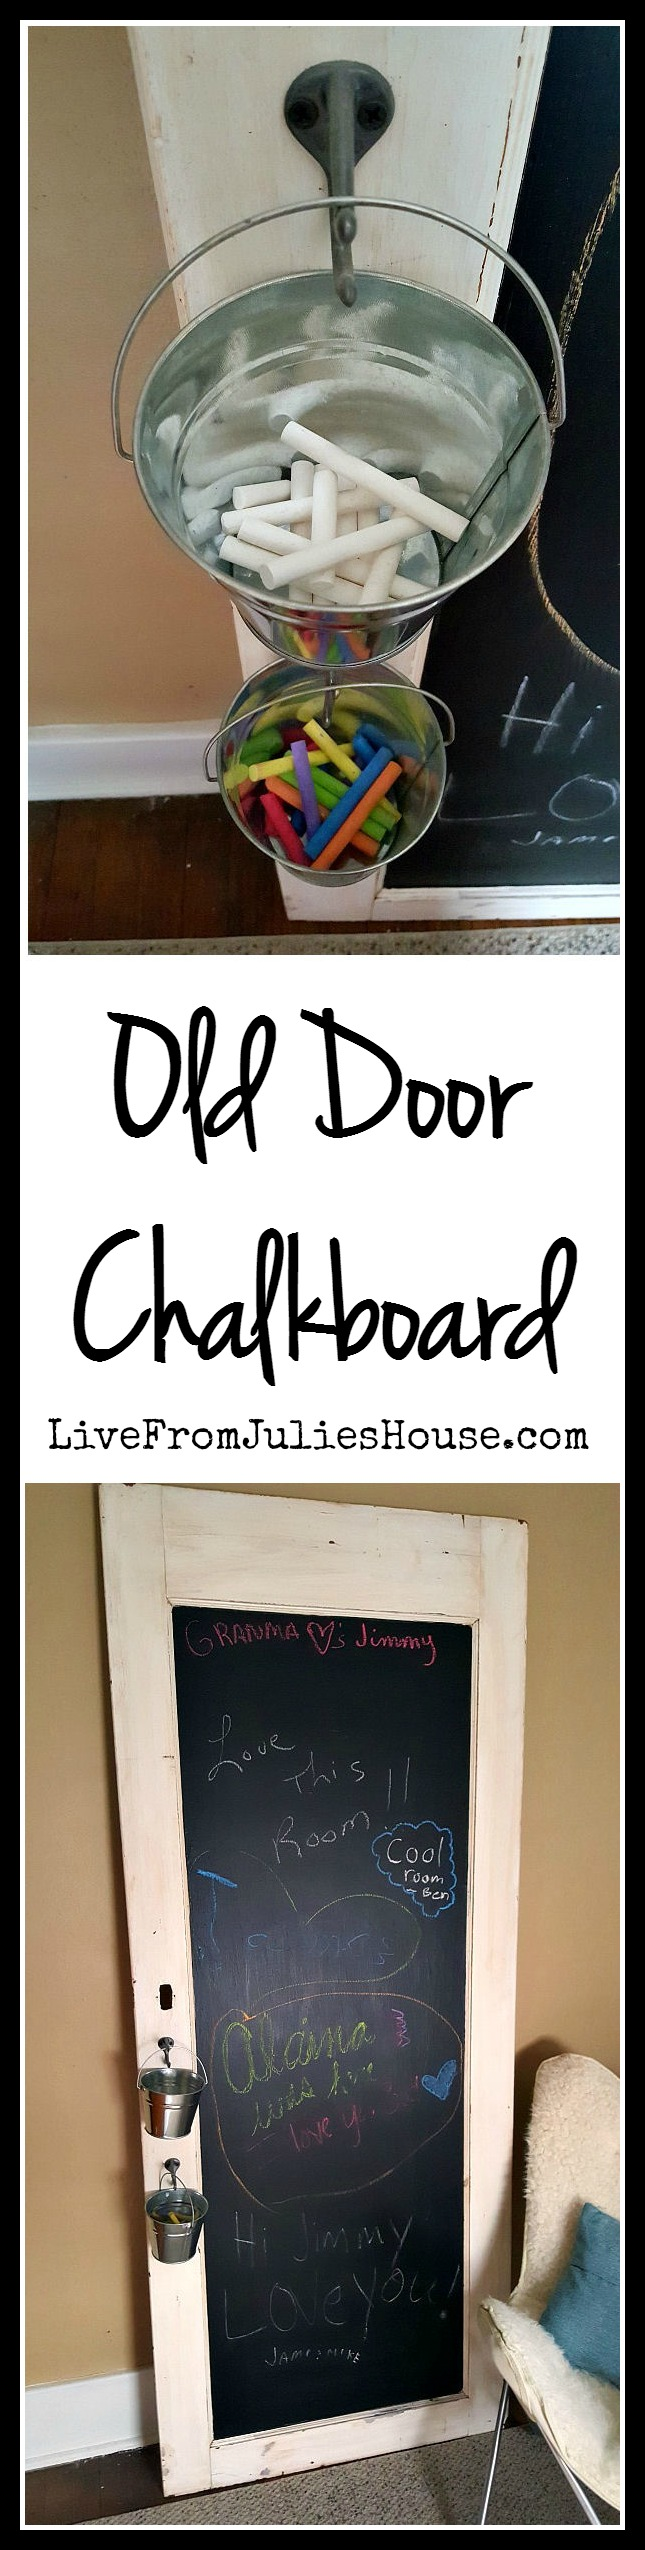 Old Door Chalkboard - My guest bedroom got a much needed makeover and it's full of creative, budget friendly DIY projects, like this old door chalkboard